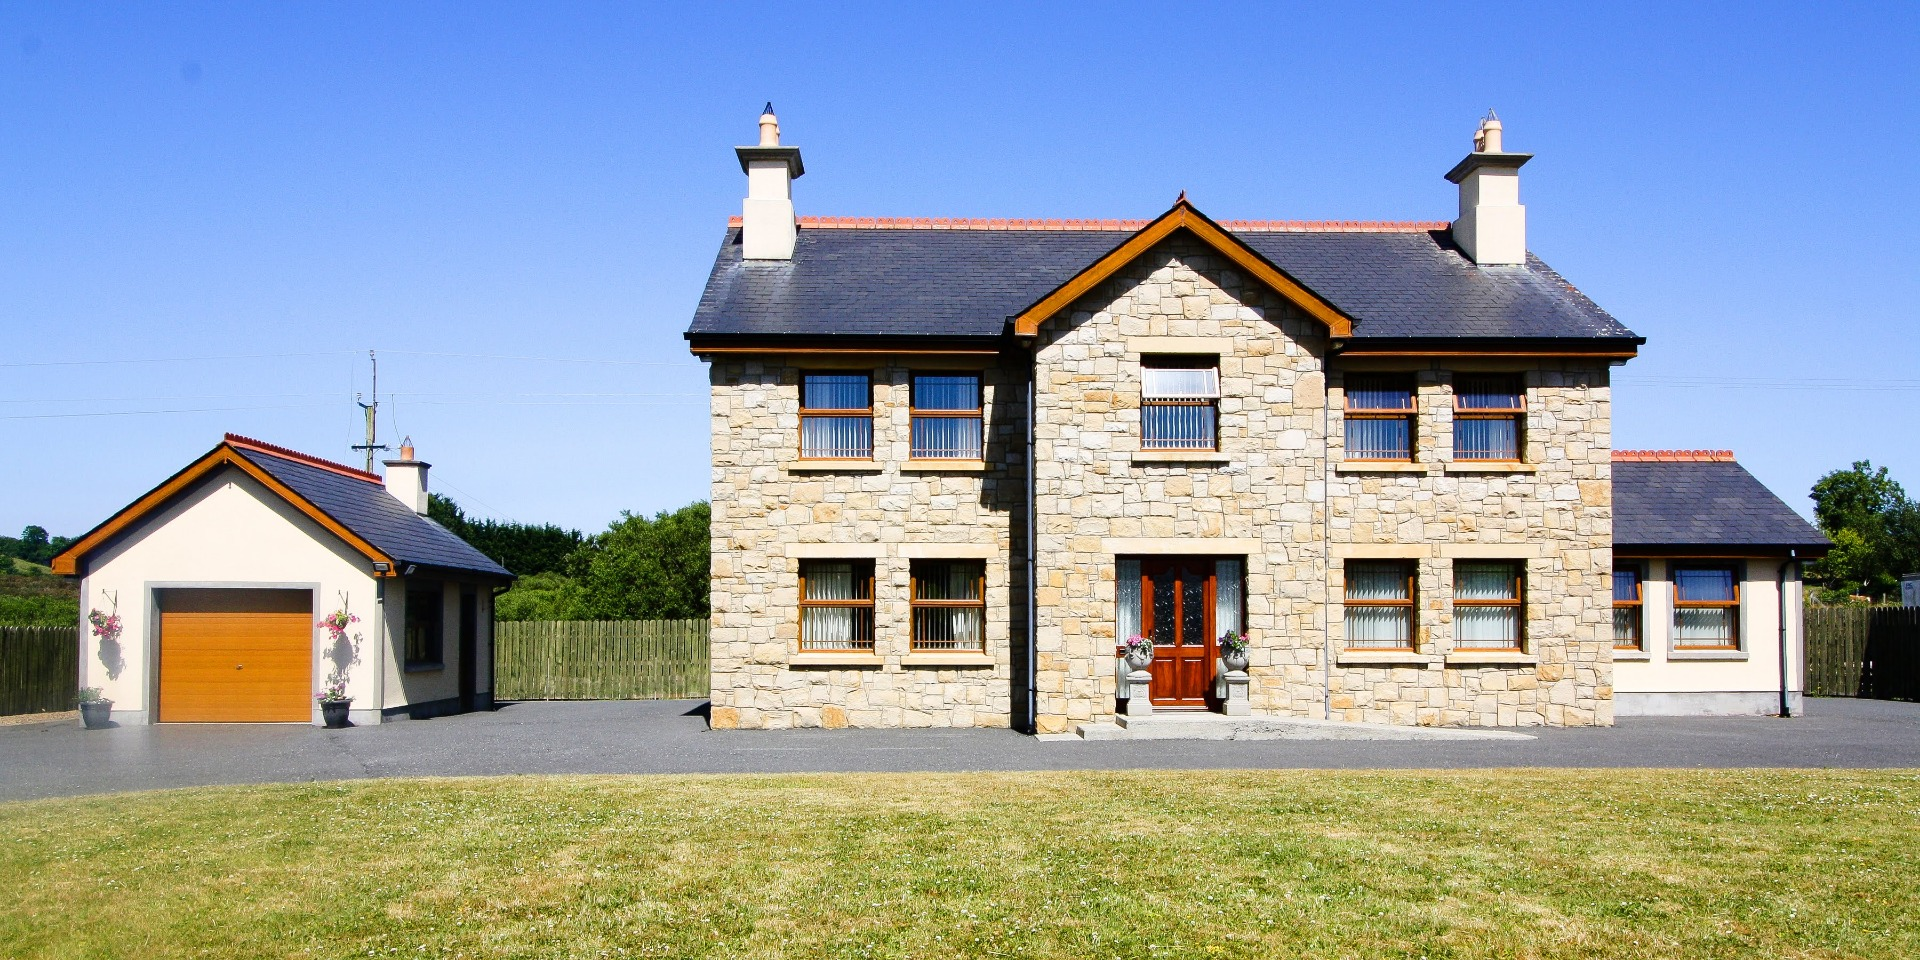 4 bed House for sale on Concession Road, Crossmaglen, Newry, Co. Down - Property Image 1